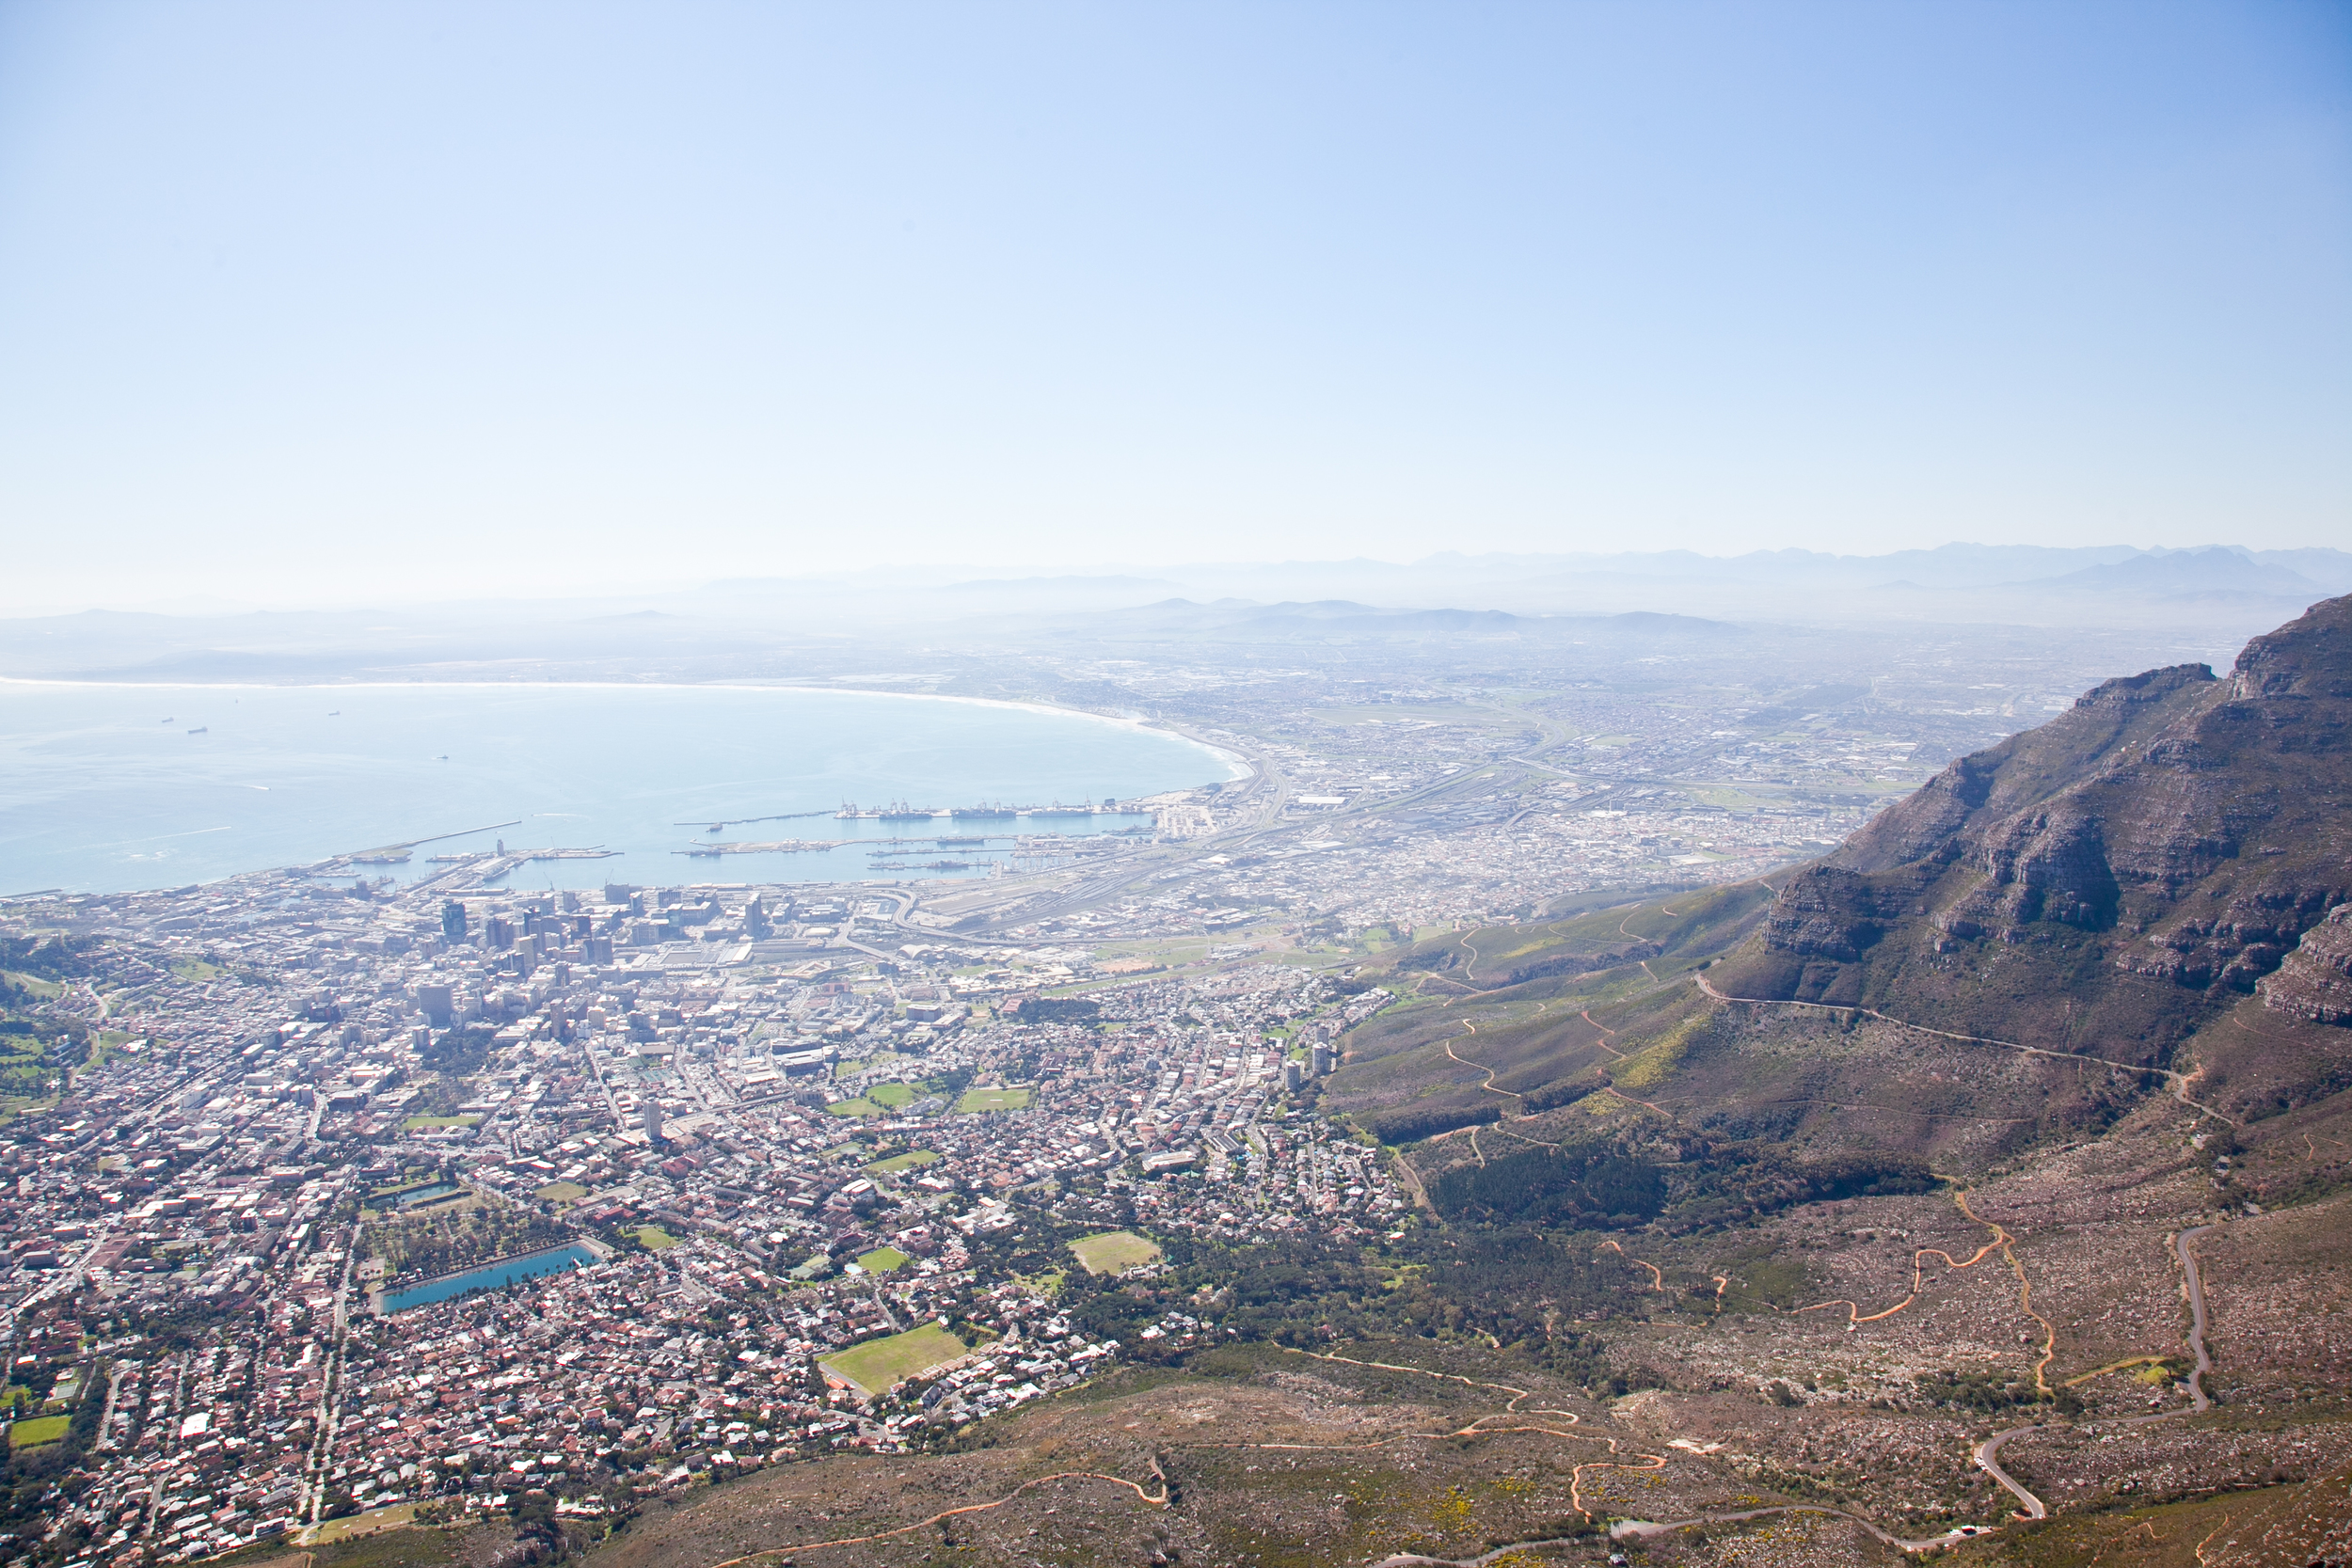 IMG_4661-table-mountain-cape-town-south-africa-trisa-taro.jpg